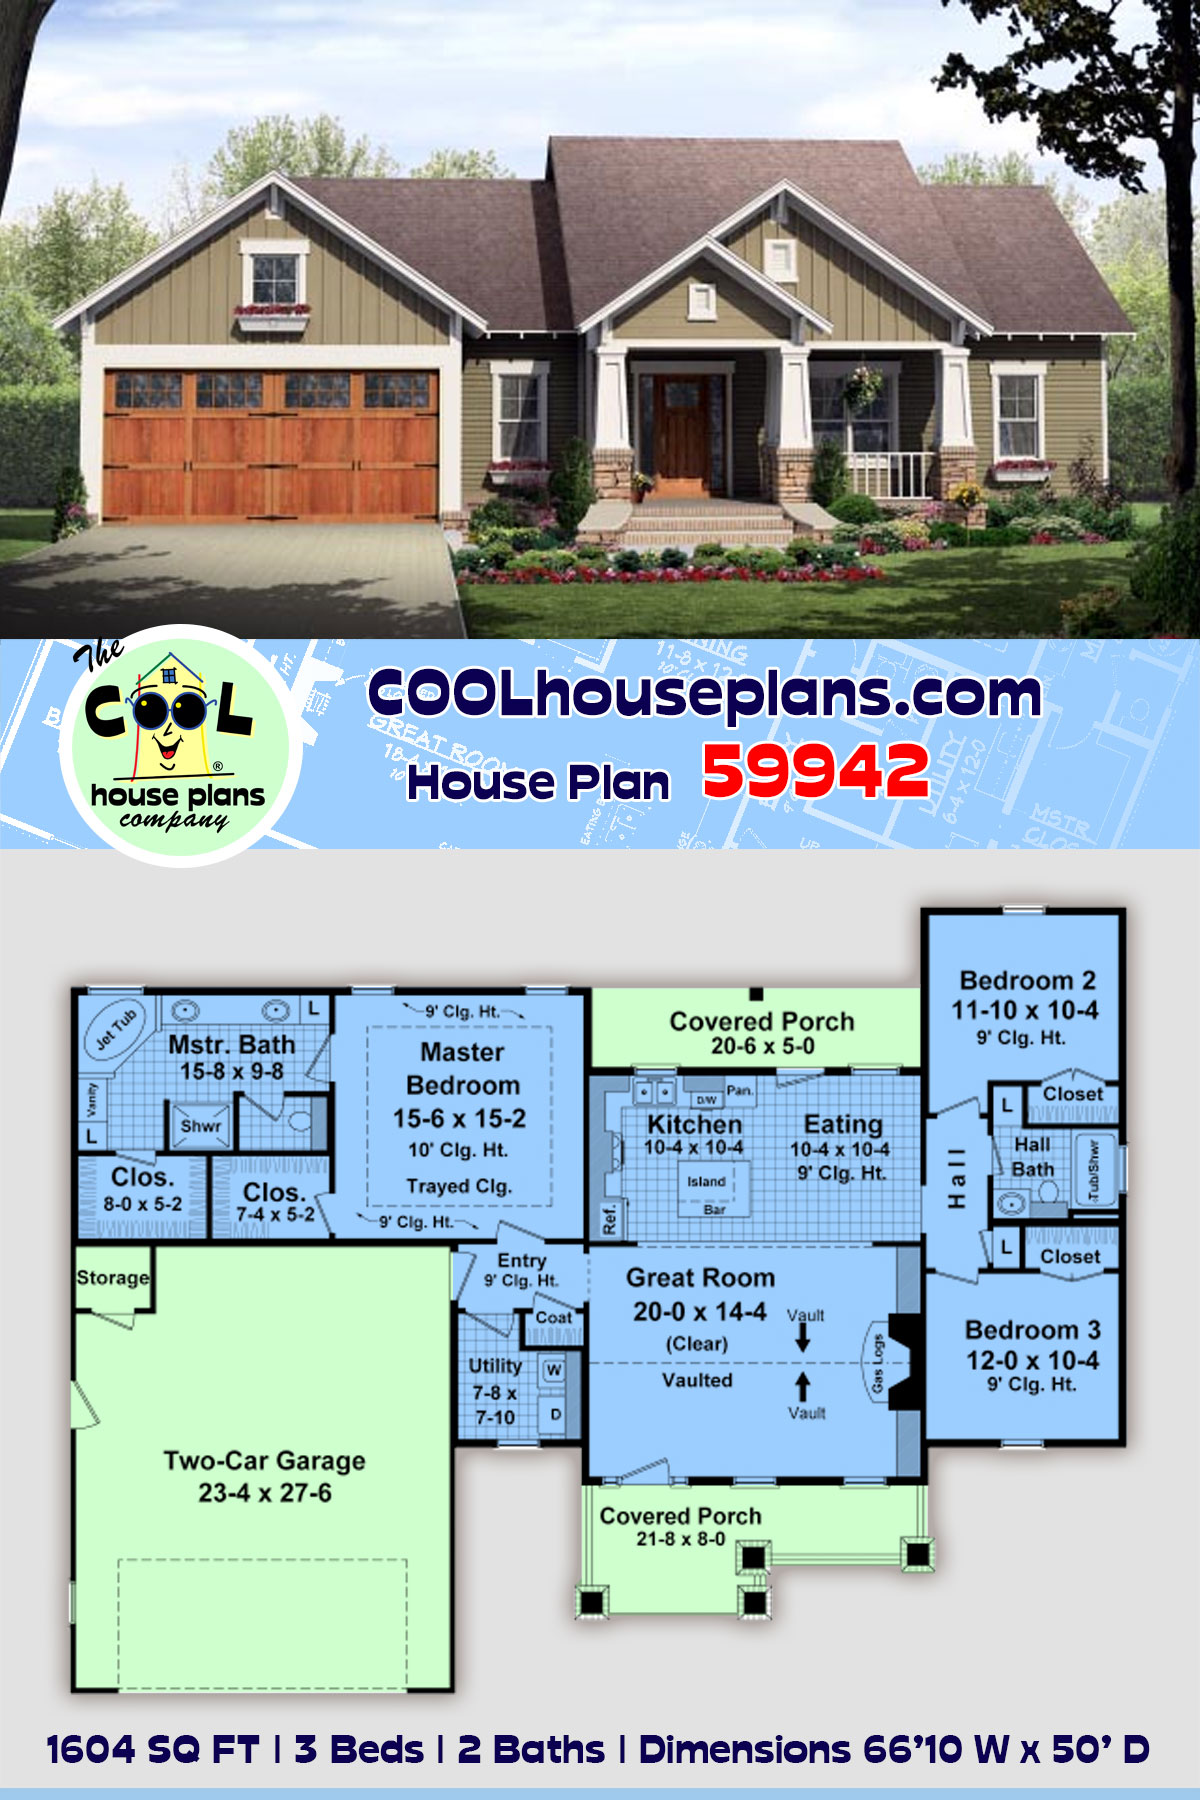 Bungalow, Craftsman House Plan 59942 with 3 Beds, 2 Baths, 2 Car Garage